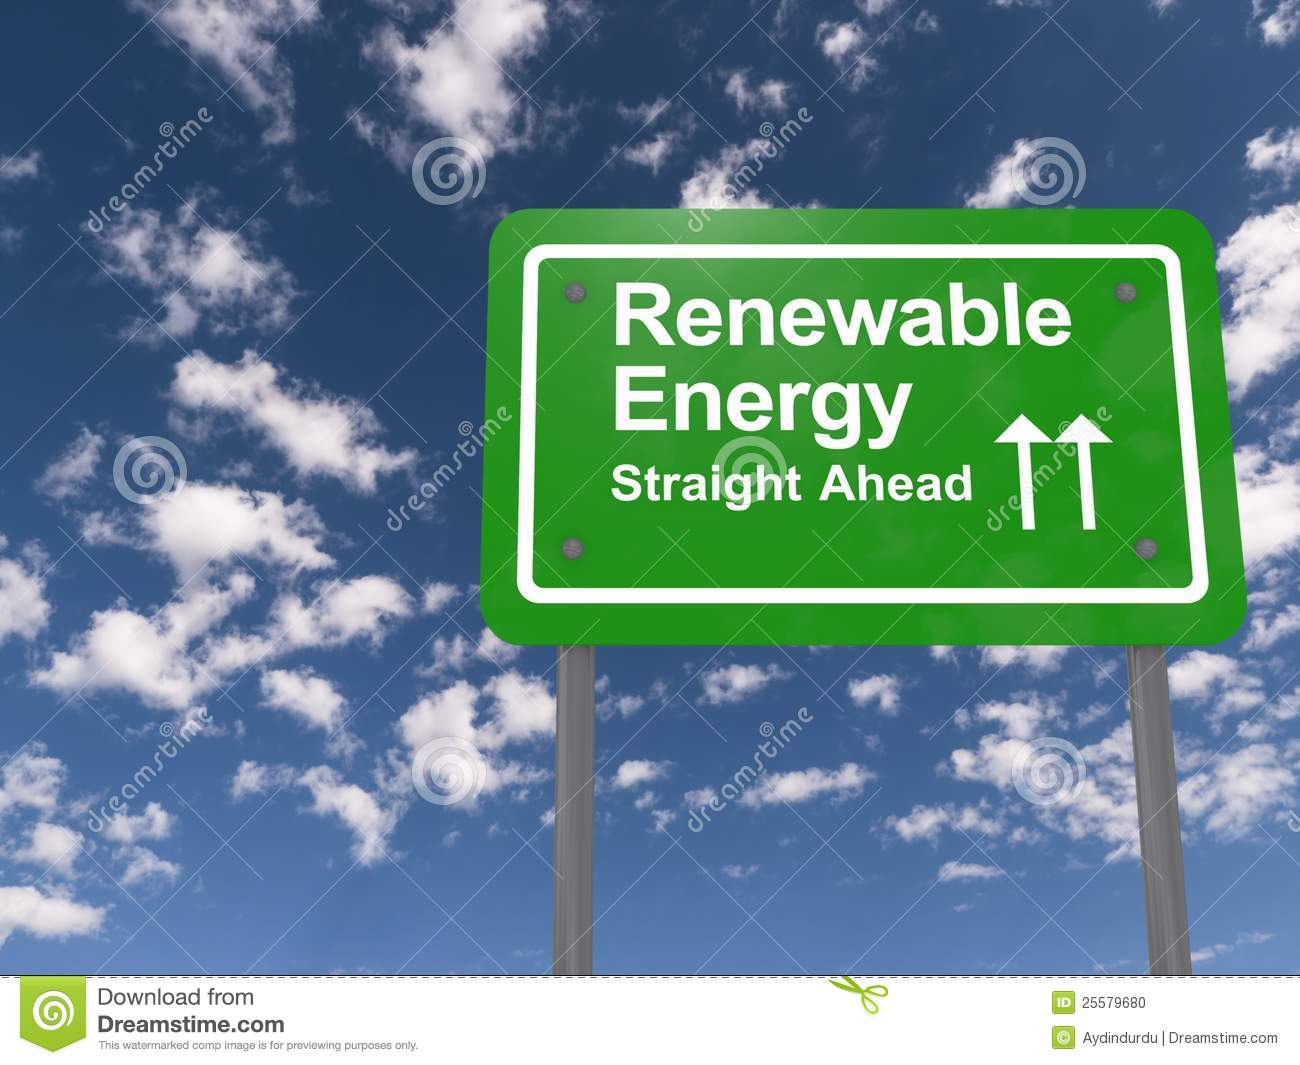 state of the art renewable energy Renewable energy: the state of the art: the business case may depend on where your company is located.